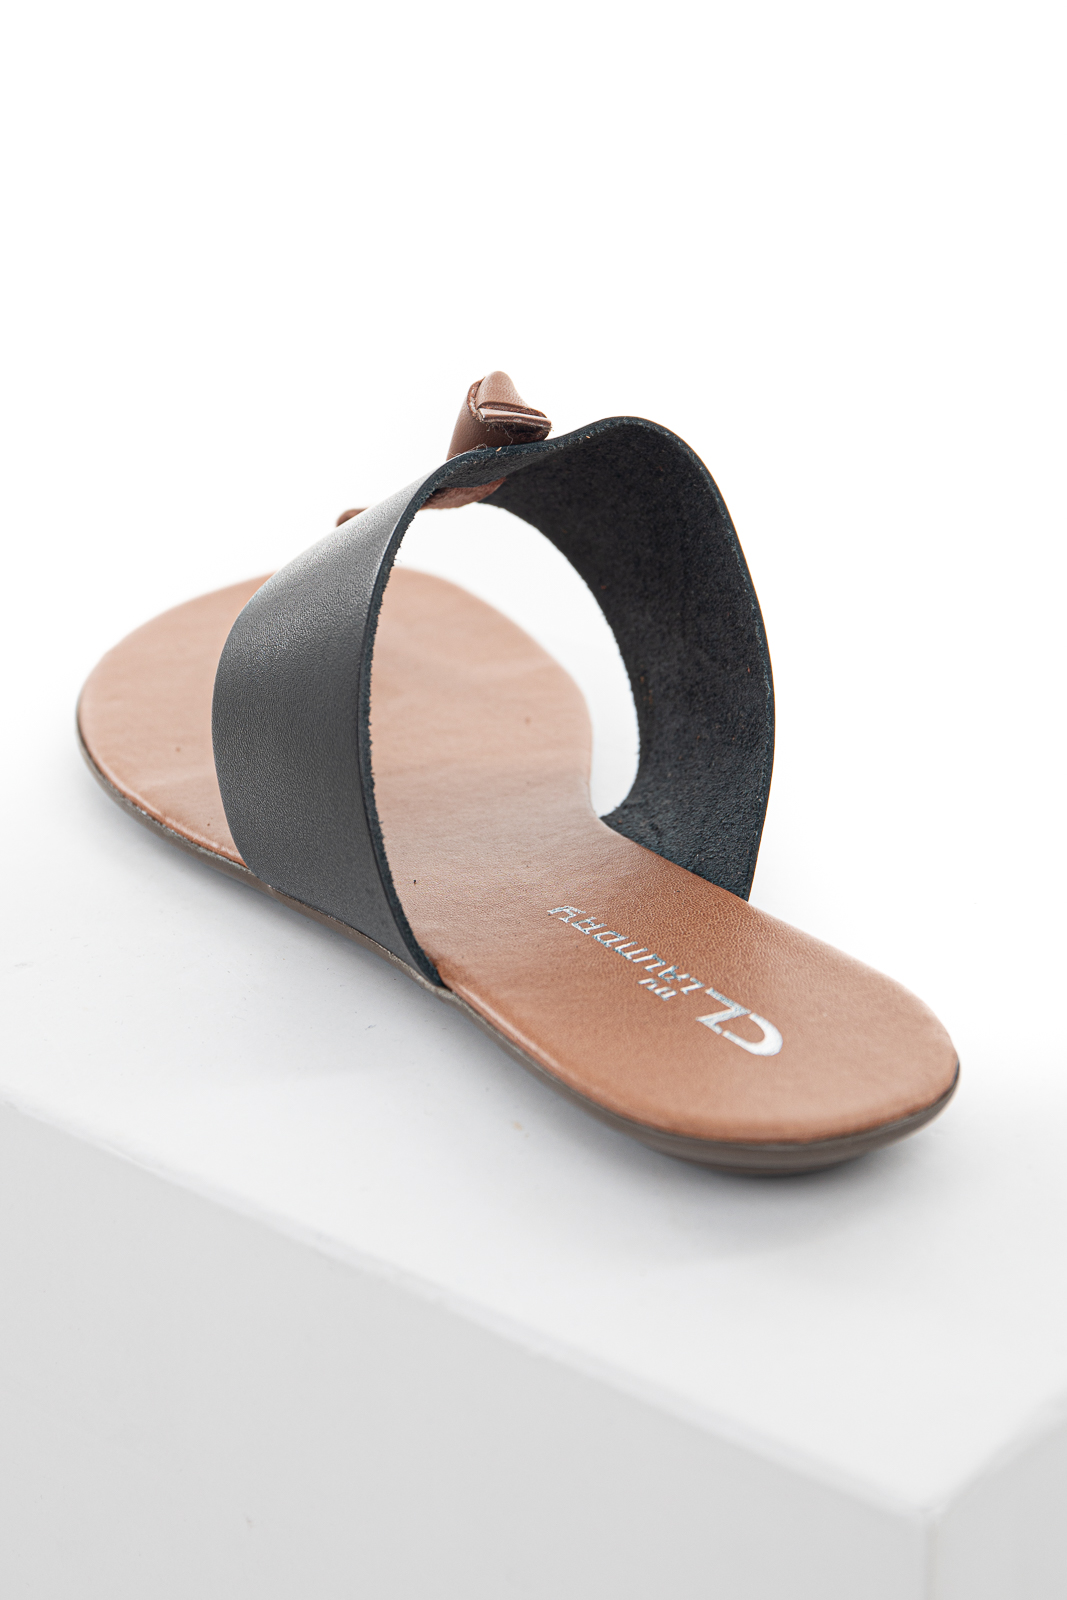 Black and Sienna Slip On Flat Thong Sandals with Wide Strap